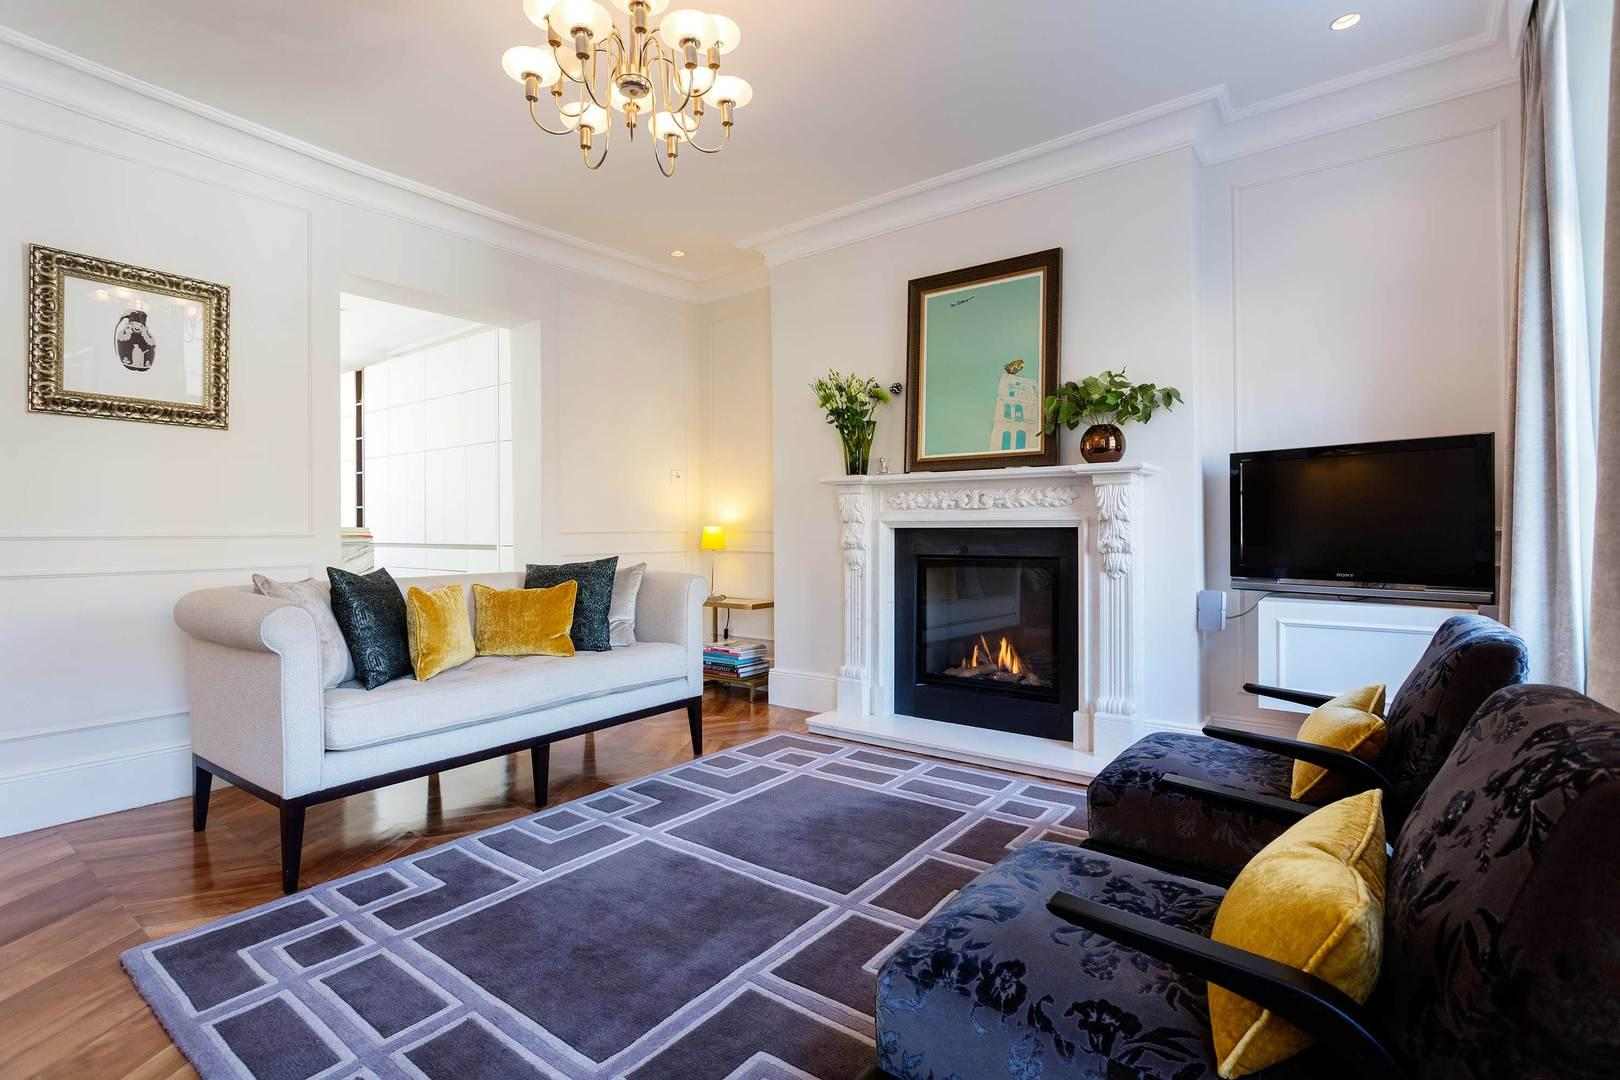 Property Image 1 - Superbly Stylish Georgian Home in Islington by Tube